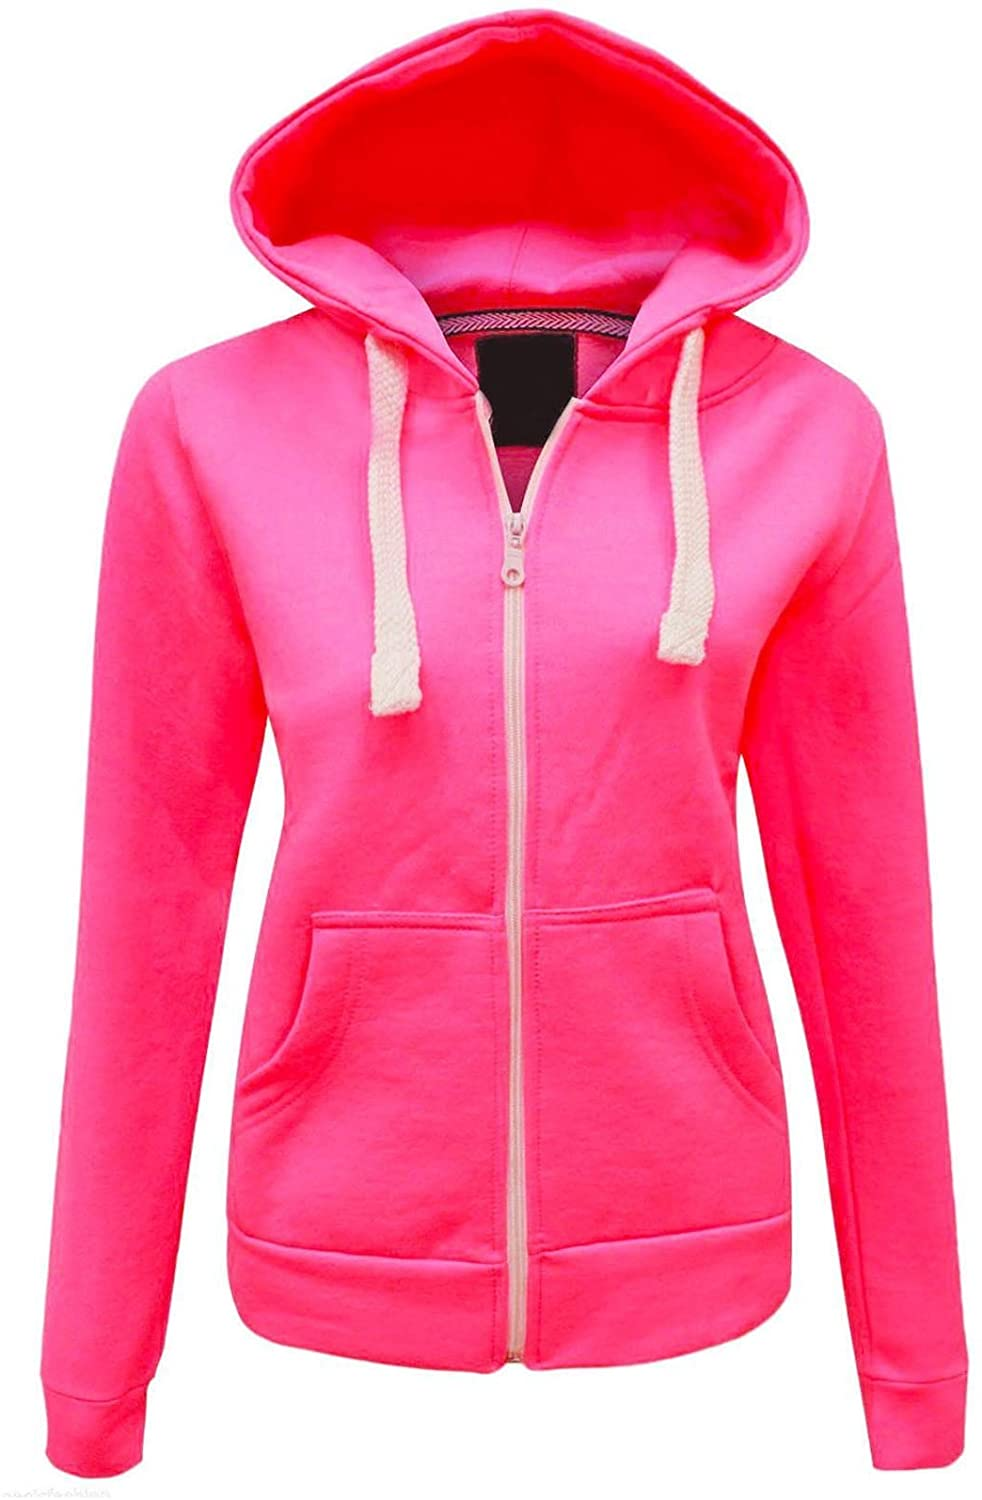 Elasticated Waist Front Zip Up Hooded